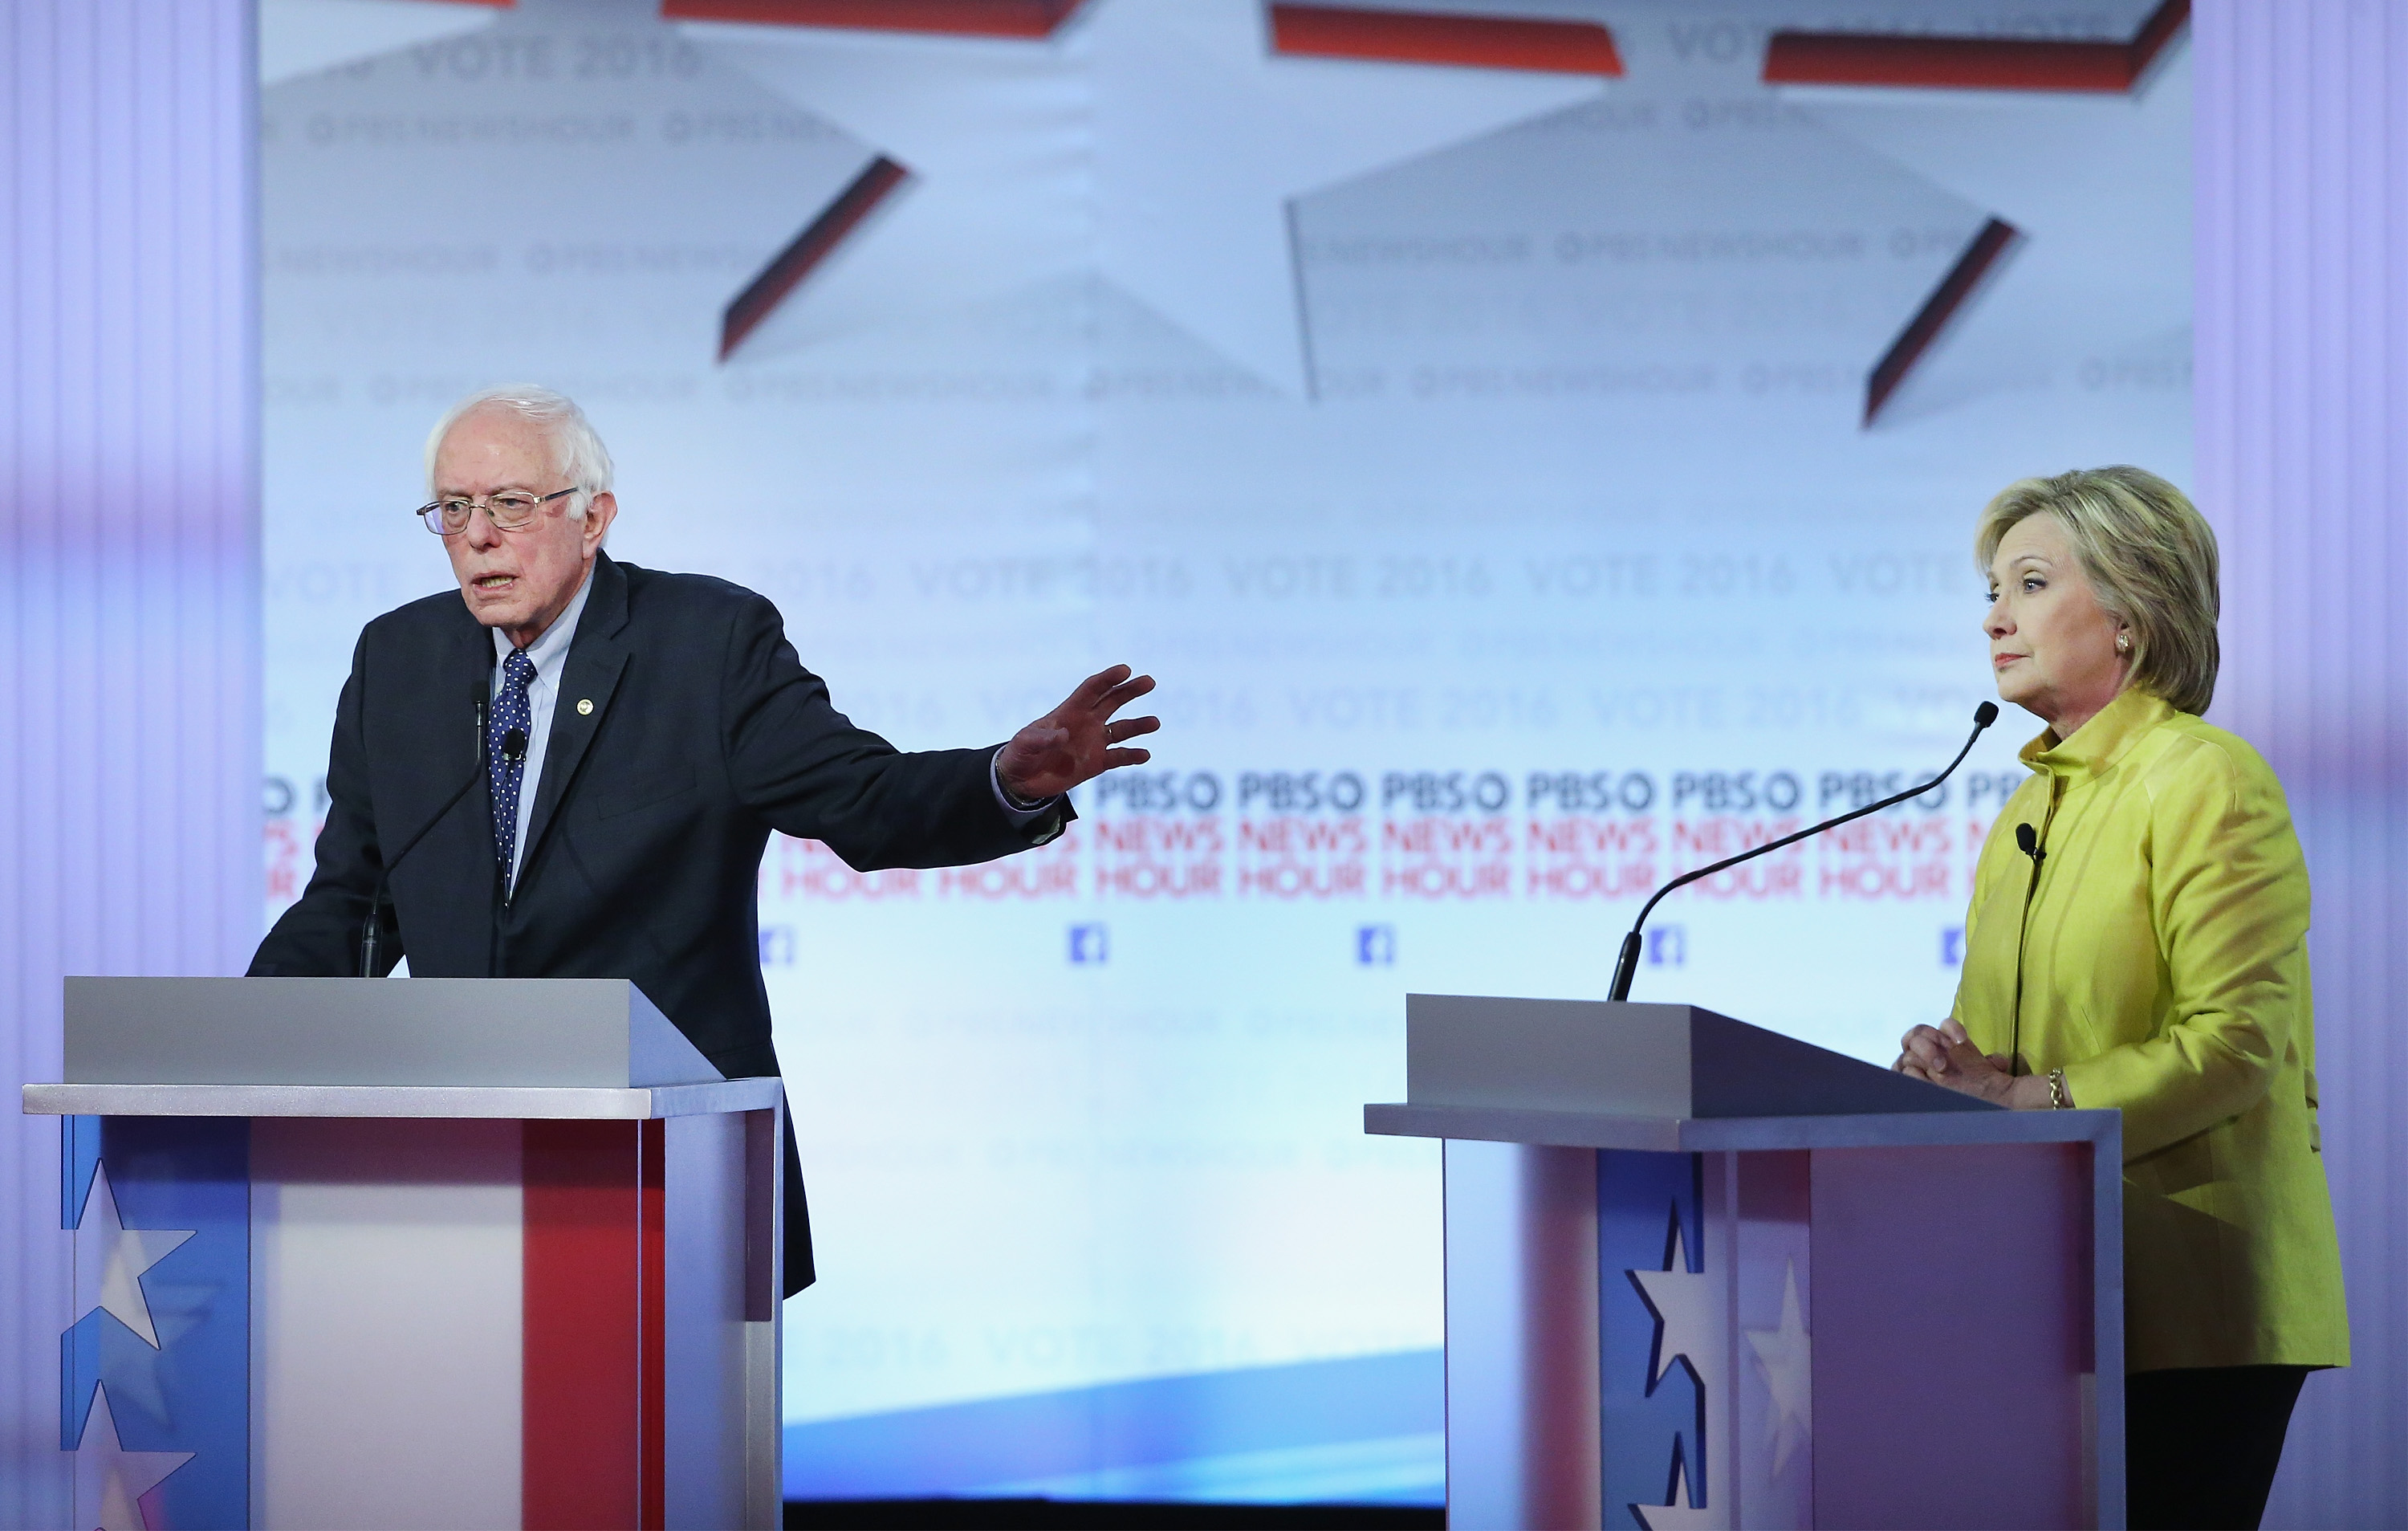 Bernie Sanders (L) and Hillary Clinton participate in the PBS NewsHour Democratic presidential candidate debate at the University of Wisconsin-Milwaukee on Feb. 11 in Milwaukee, Wisconsin.